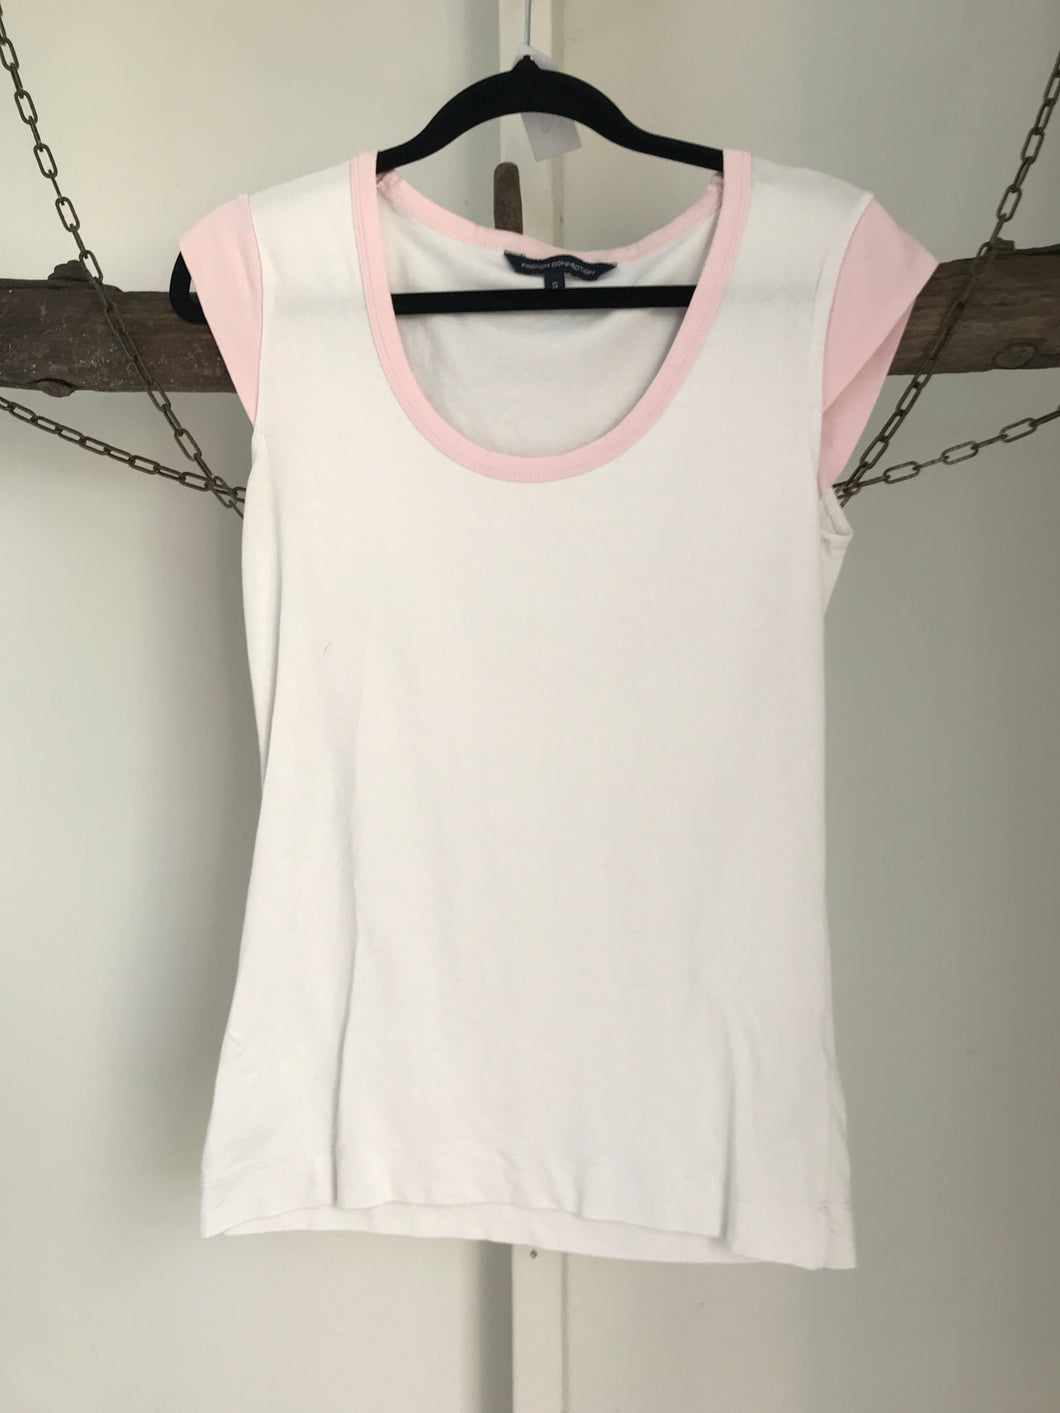 French Connection White/Pink Size S (6)